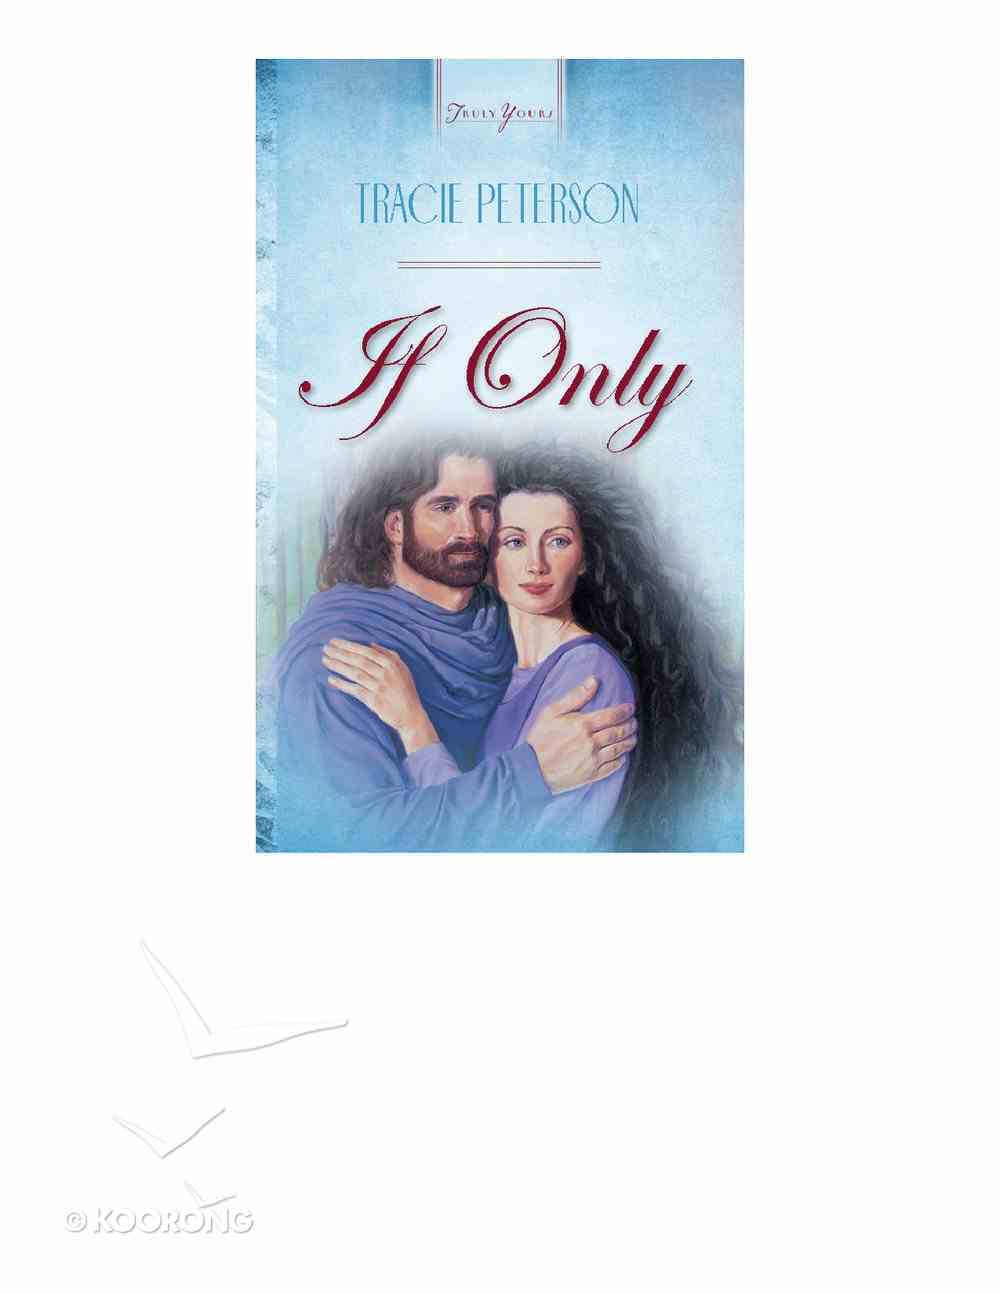 If Only (Heartsong Series) Mass Market